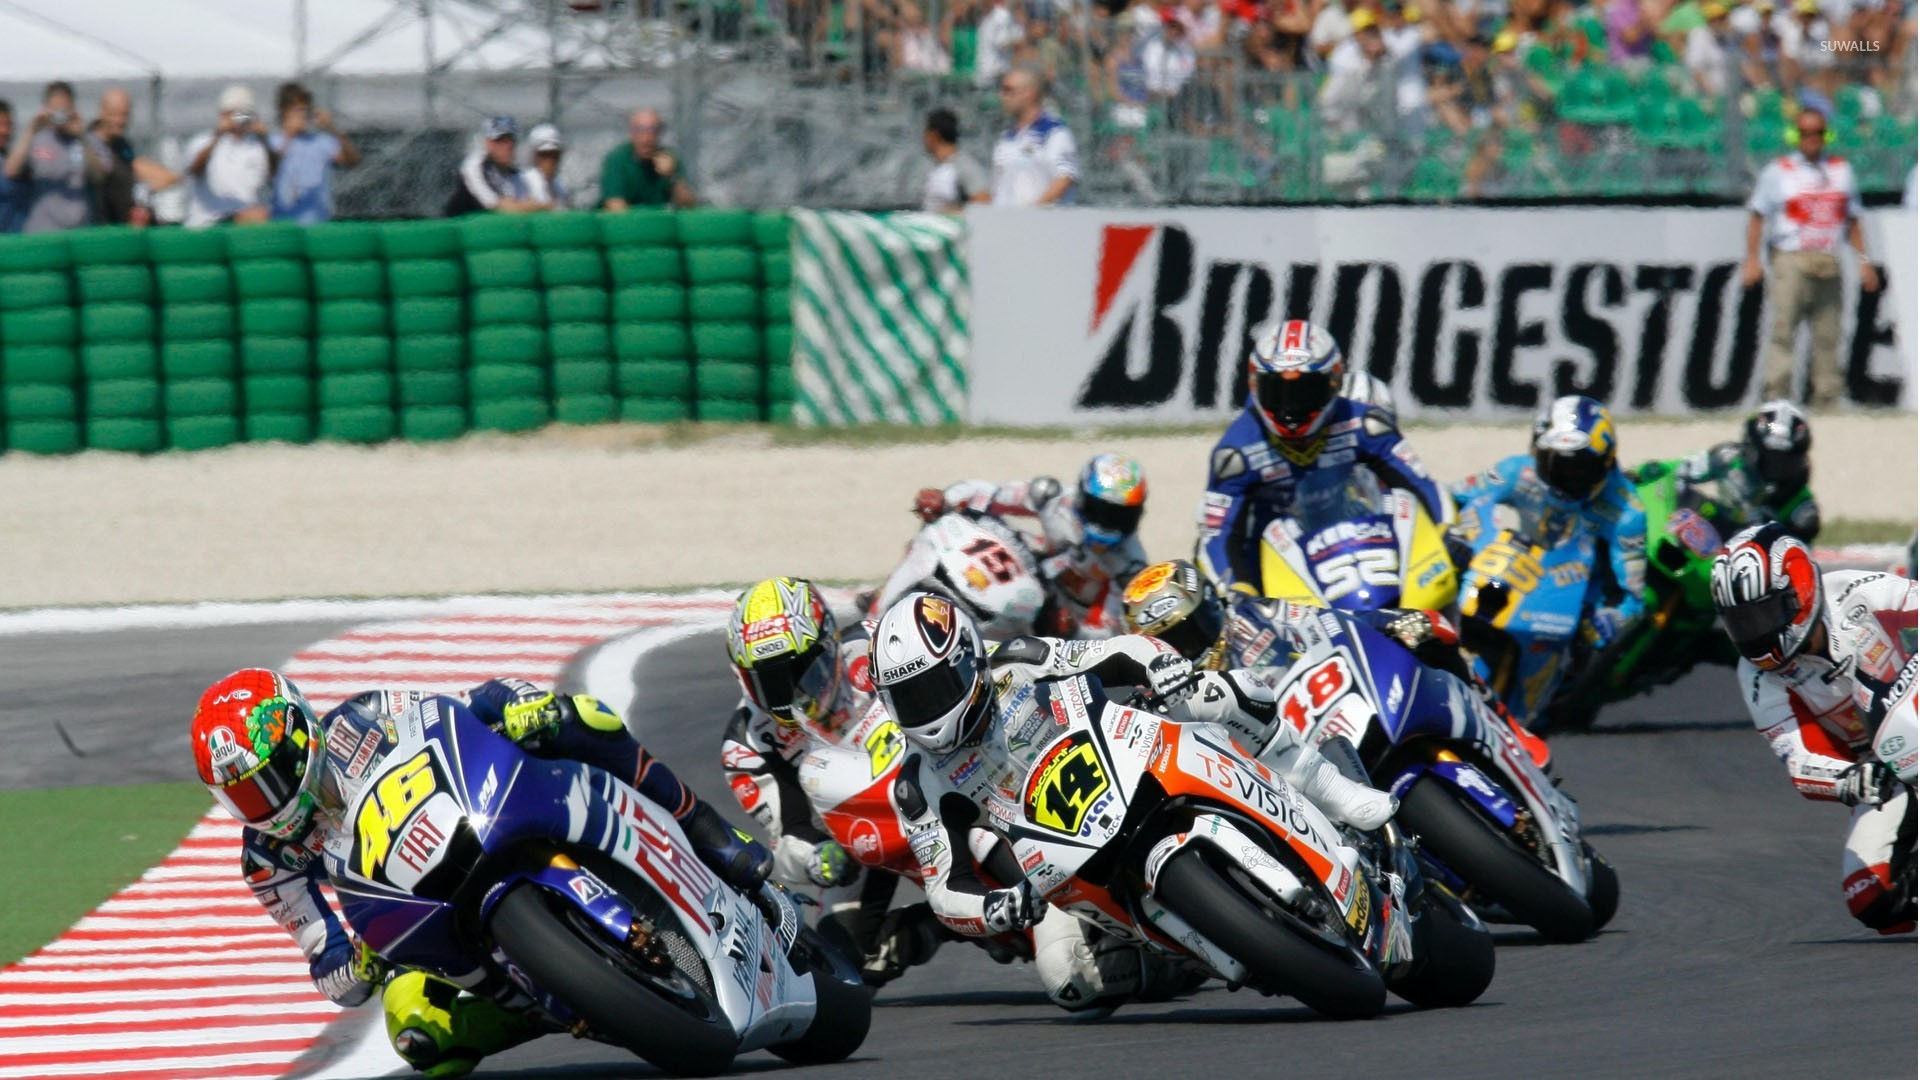 MotoGP 2 wallpaper Motorcycle wallpapers 29594